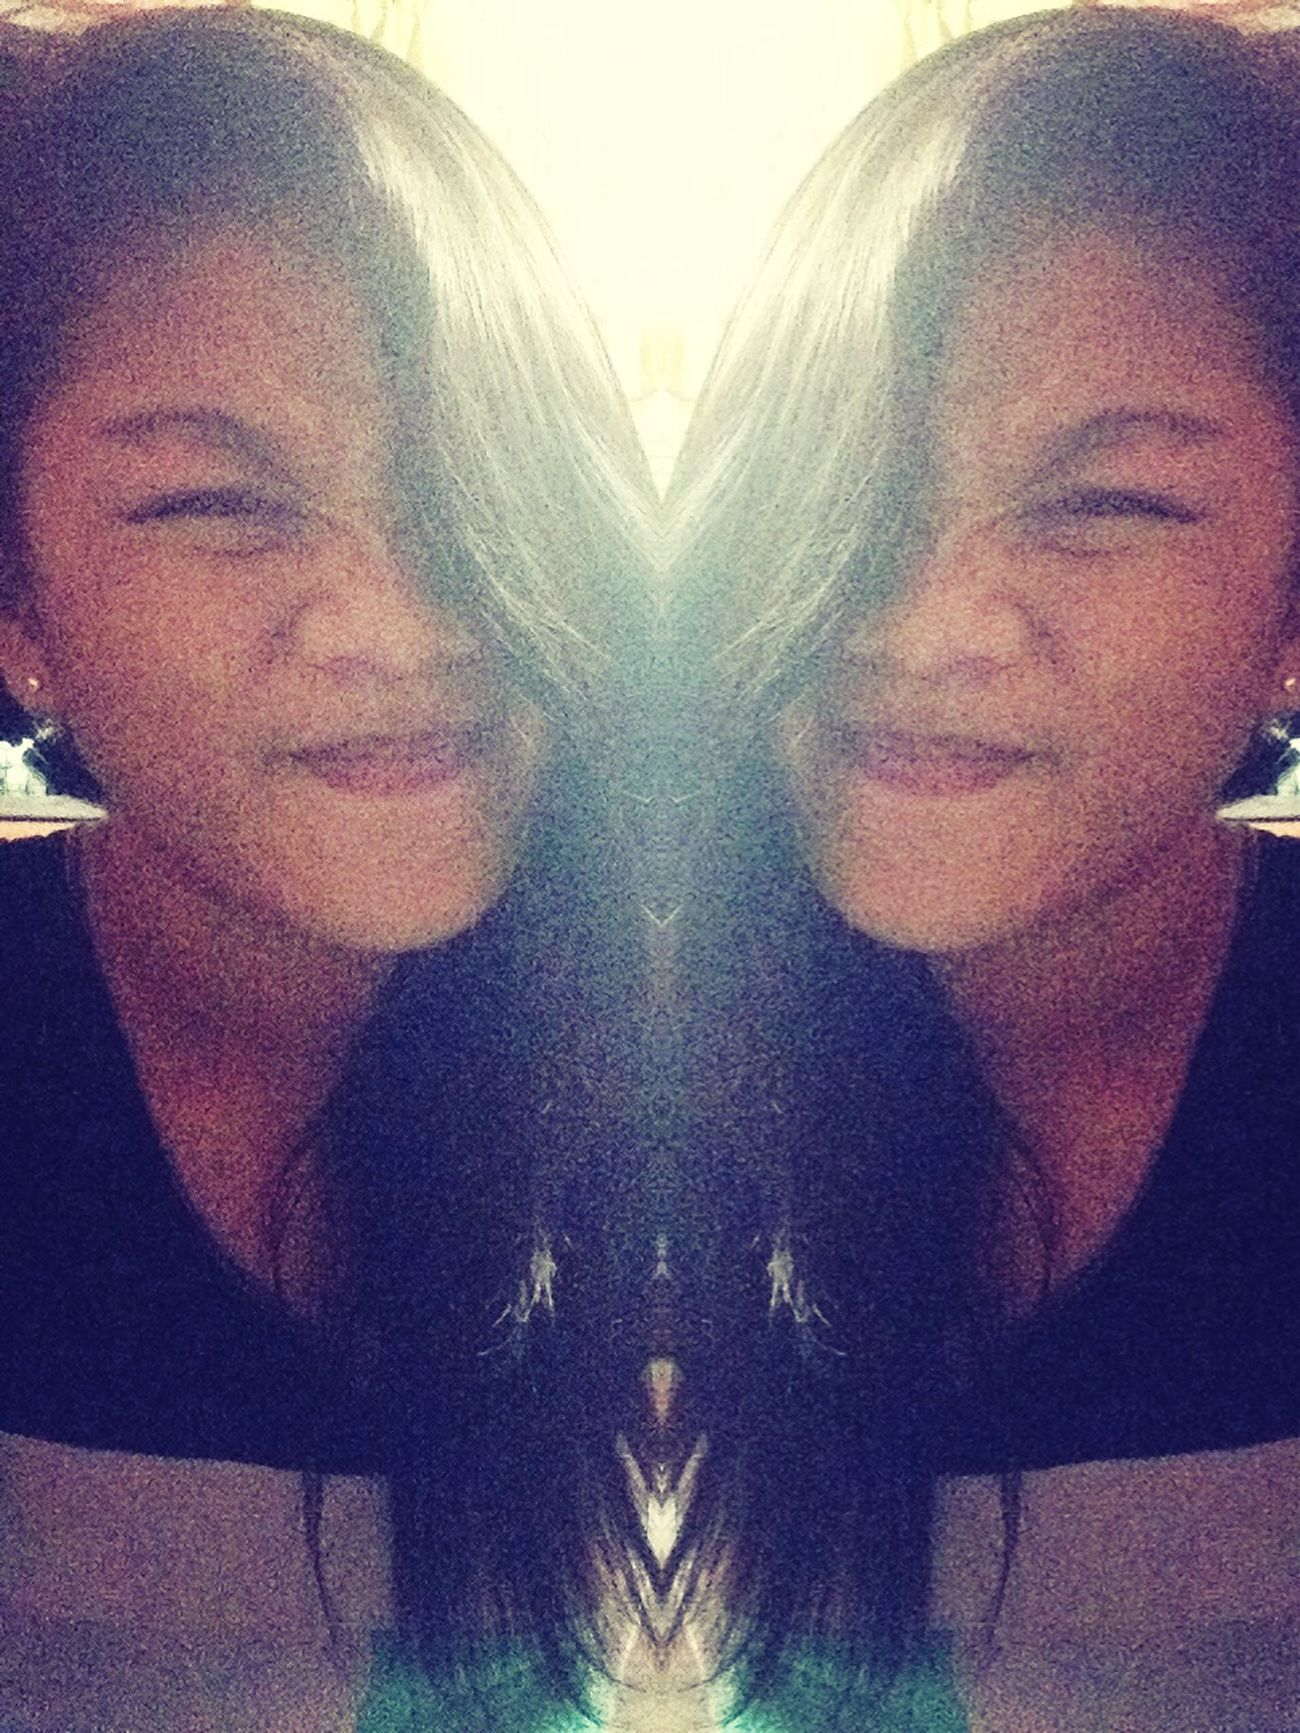 Hey! Hey! Meet my twin. :)